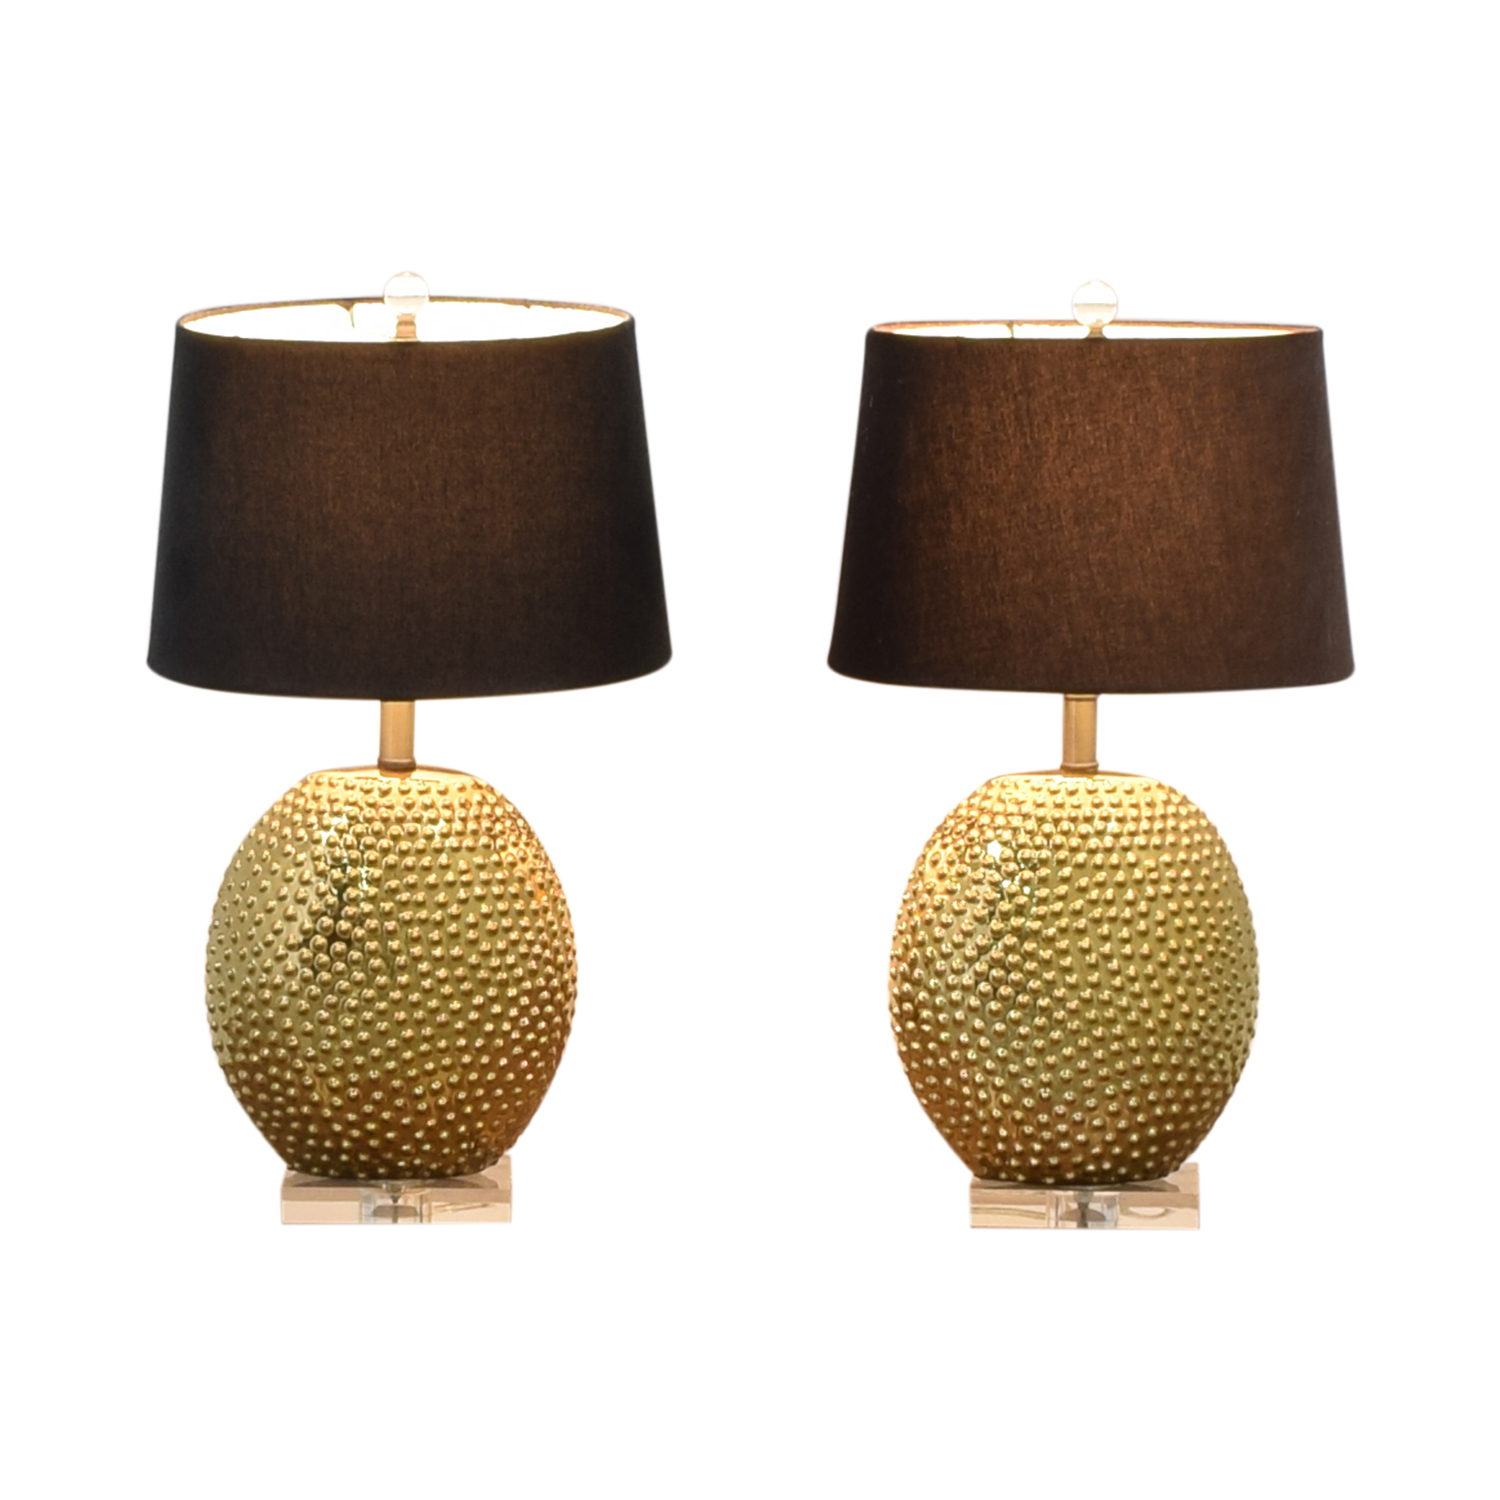 Tahari Home Tahari Home Decorative Table Lamps nj